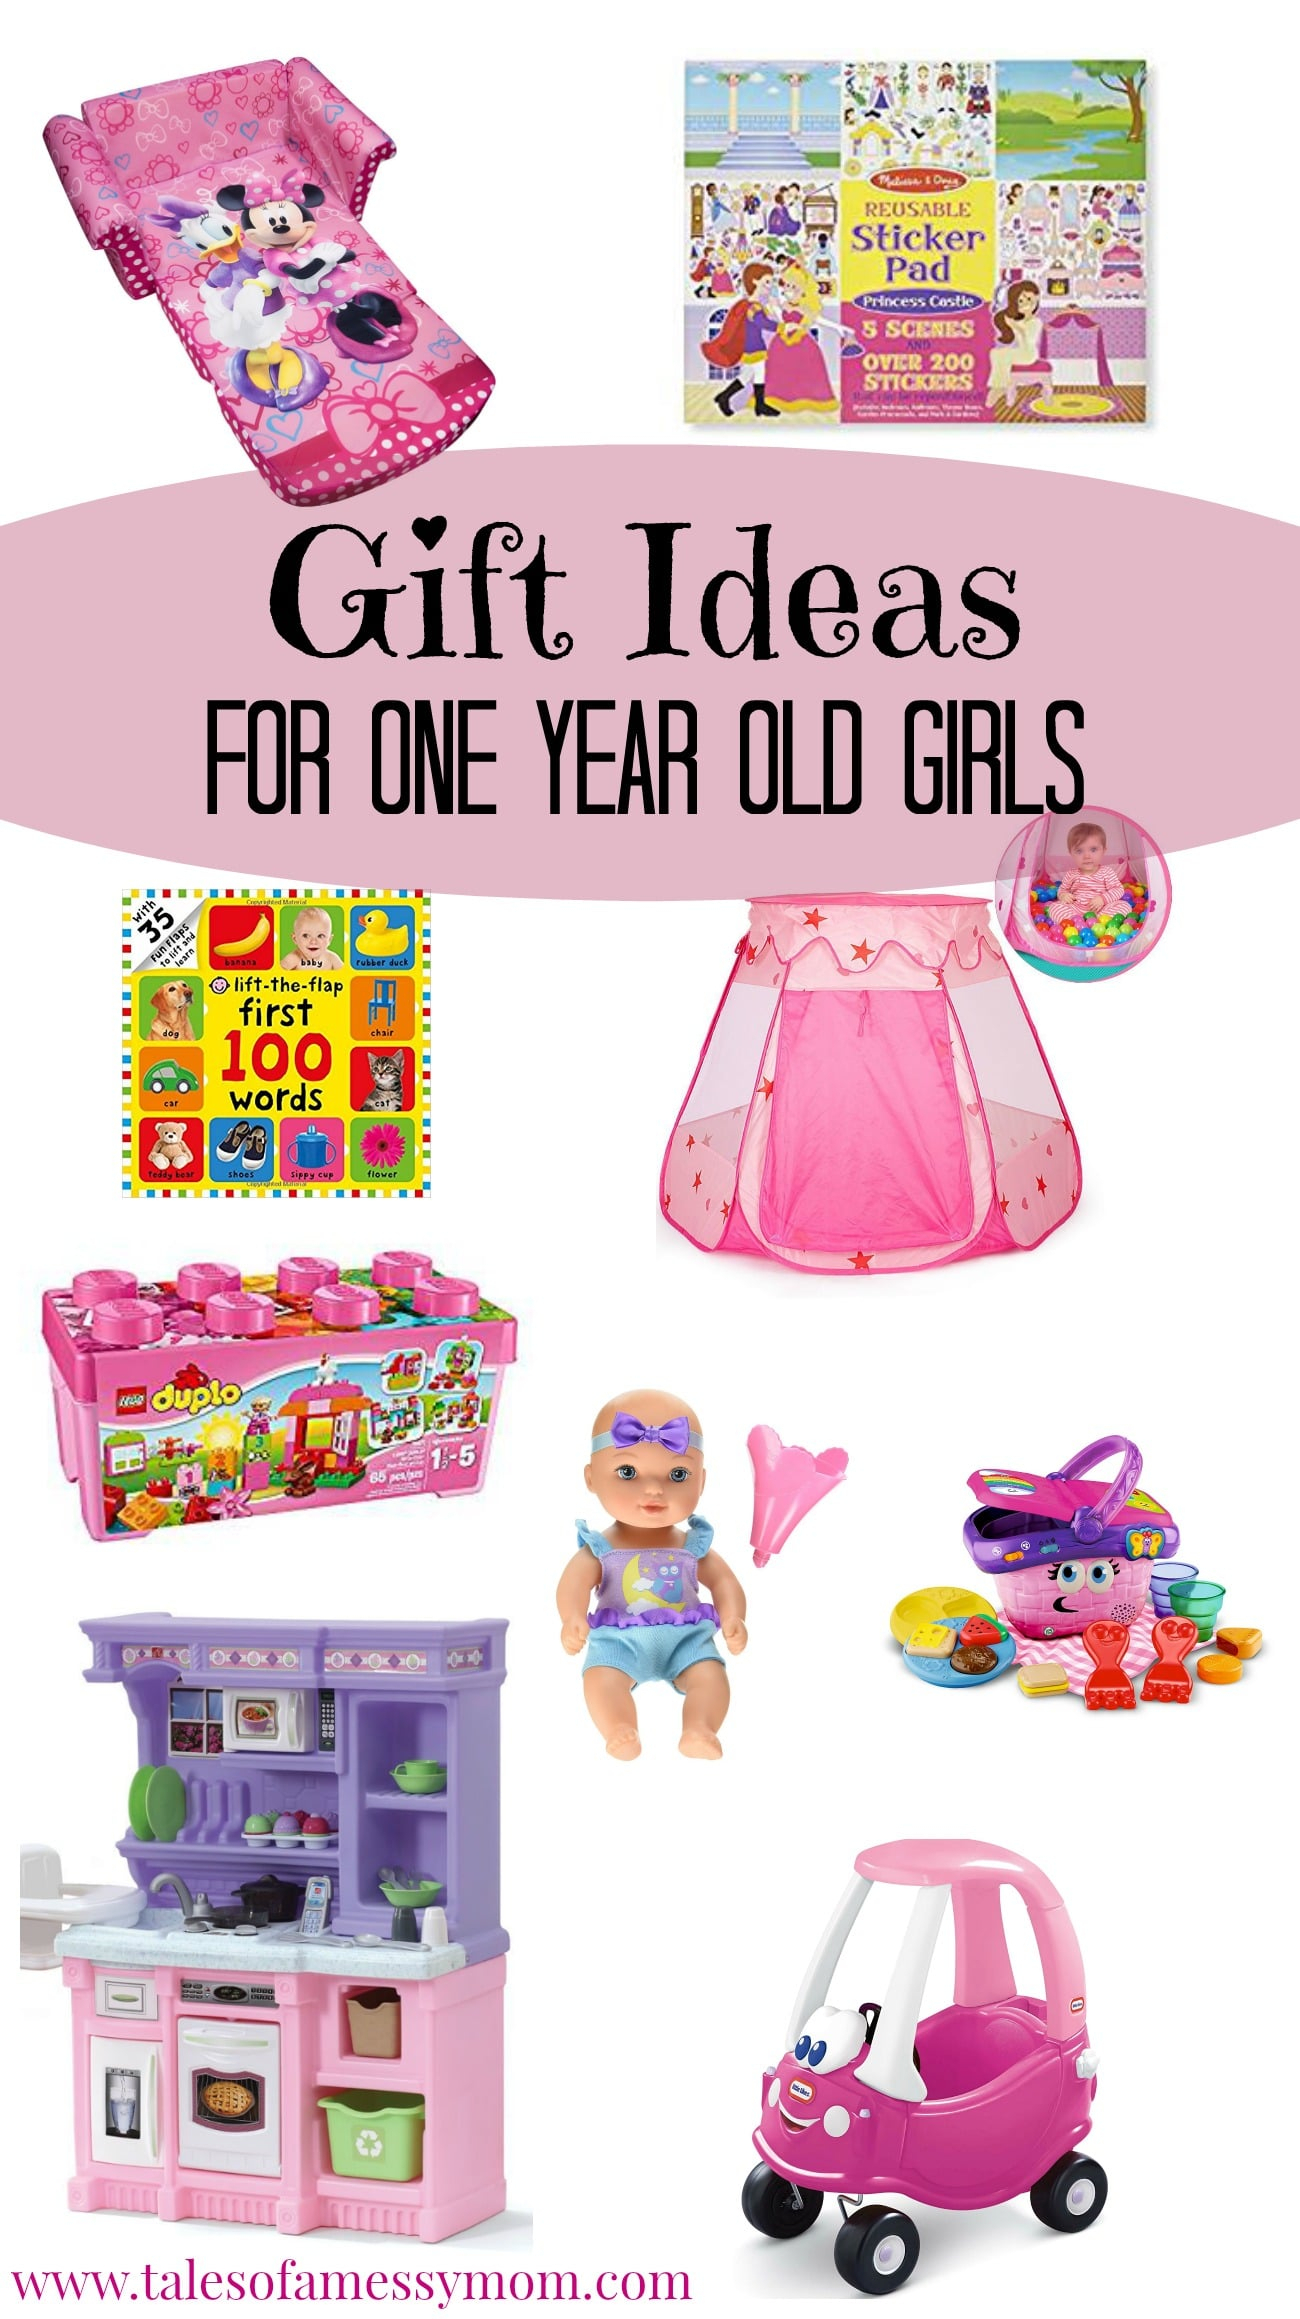 10 Lovable Gift Ideas For A 1 Year Old Girl gift ideas for one year old girls tales of a messy mom 10 2020